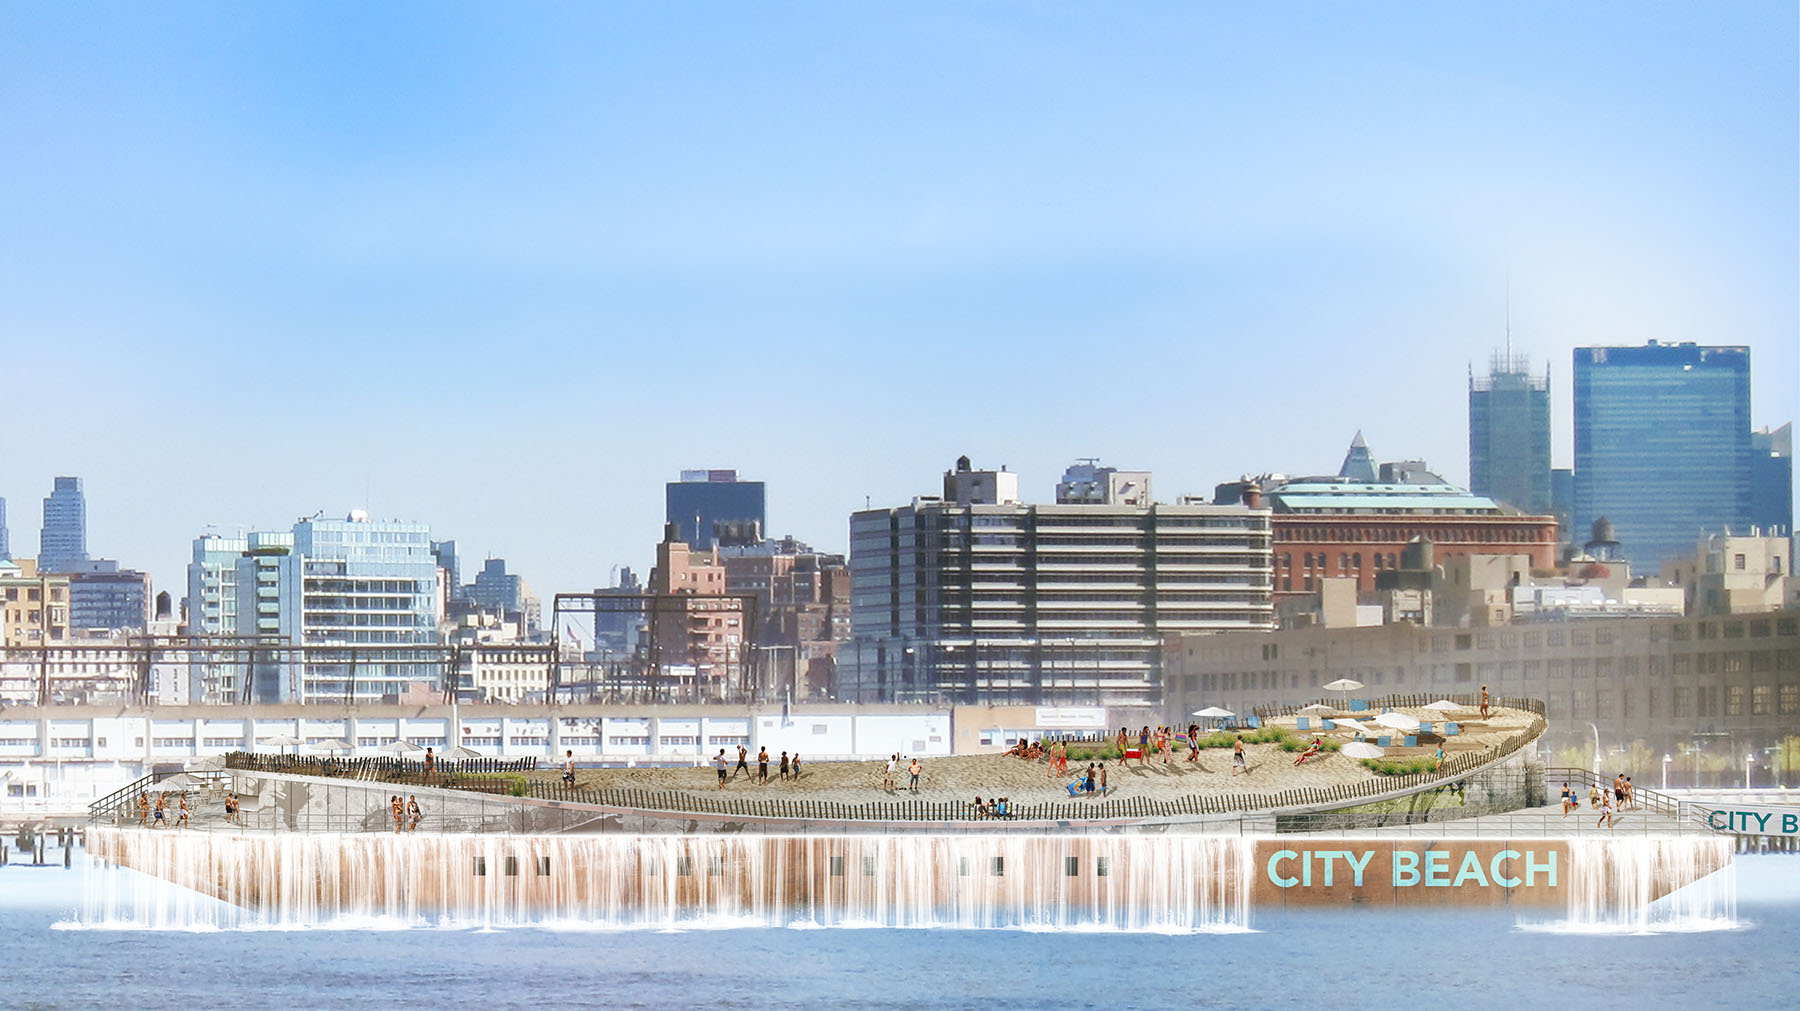 City Beach NYC featured online and in print